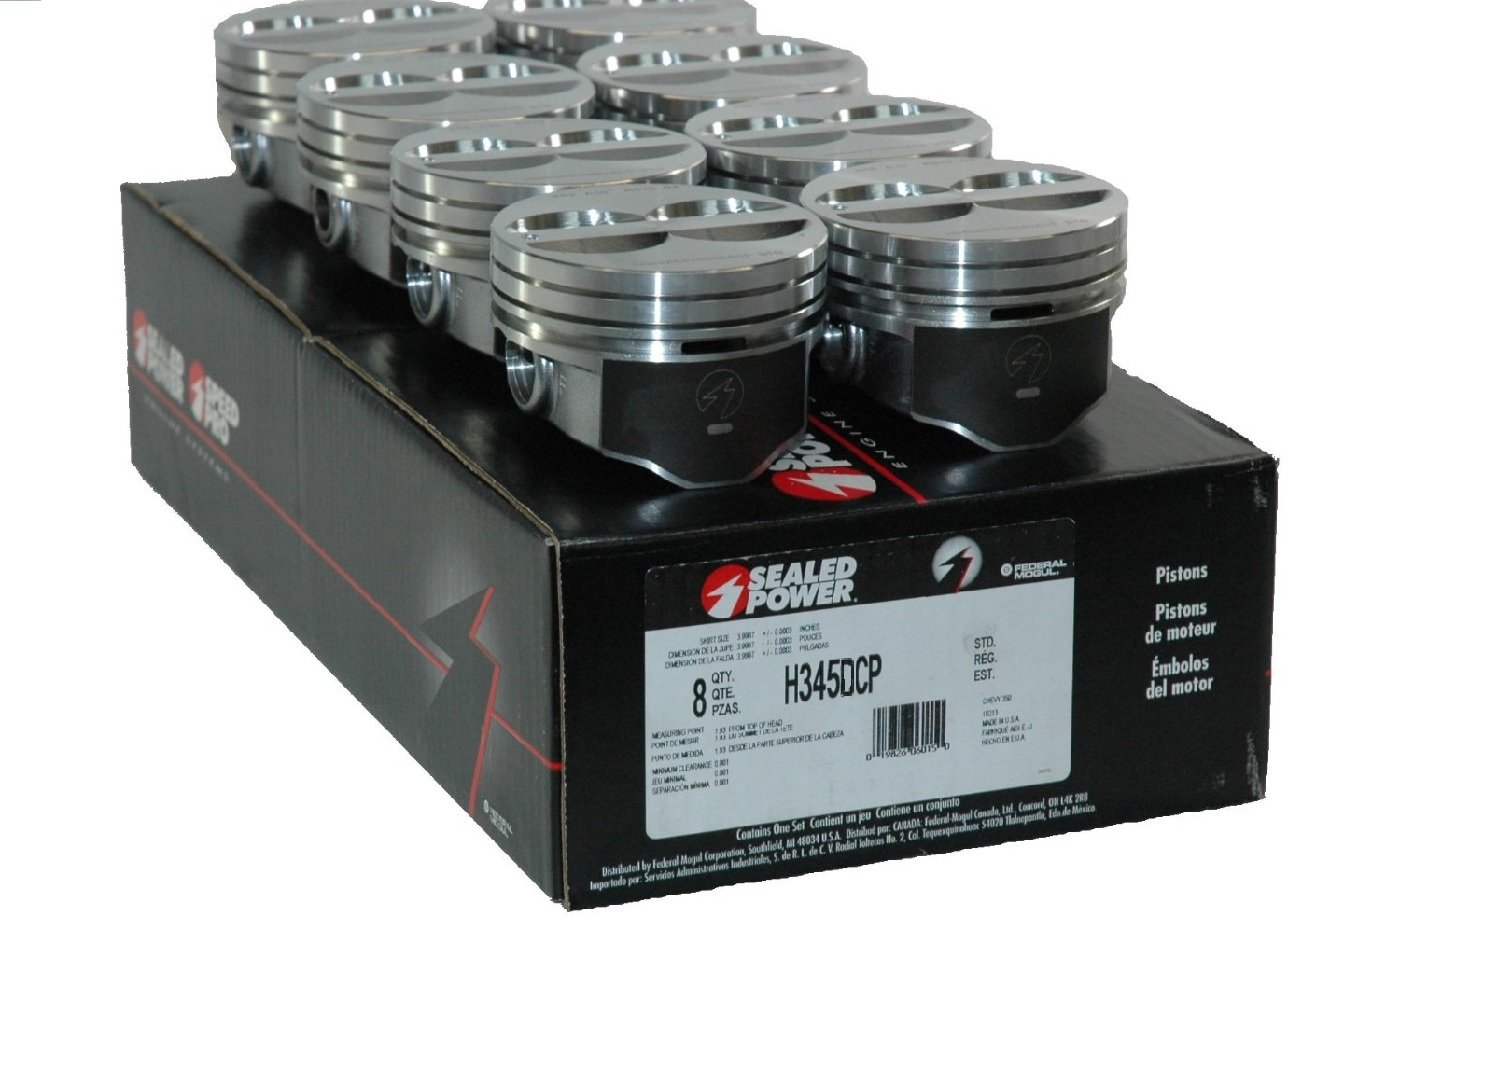 Speed Pro H345DCP 350 Small Block Chevy SBC Flat Top Pistons Coated Piston 5.7' (STD 4.00' Bore Diameter) Sealed Power